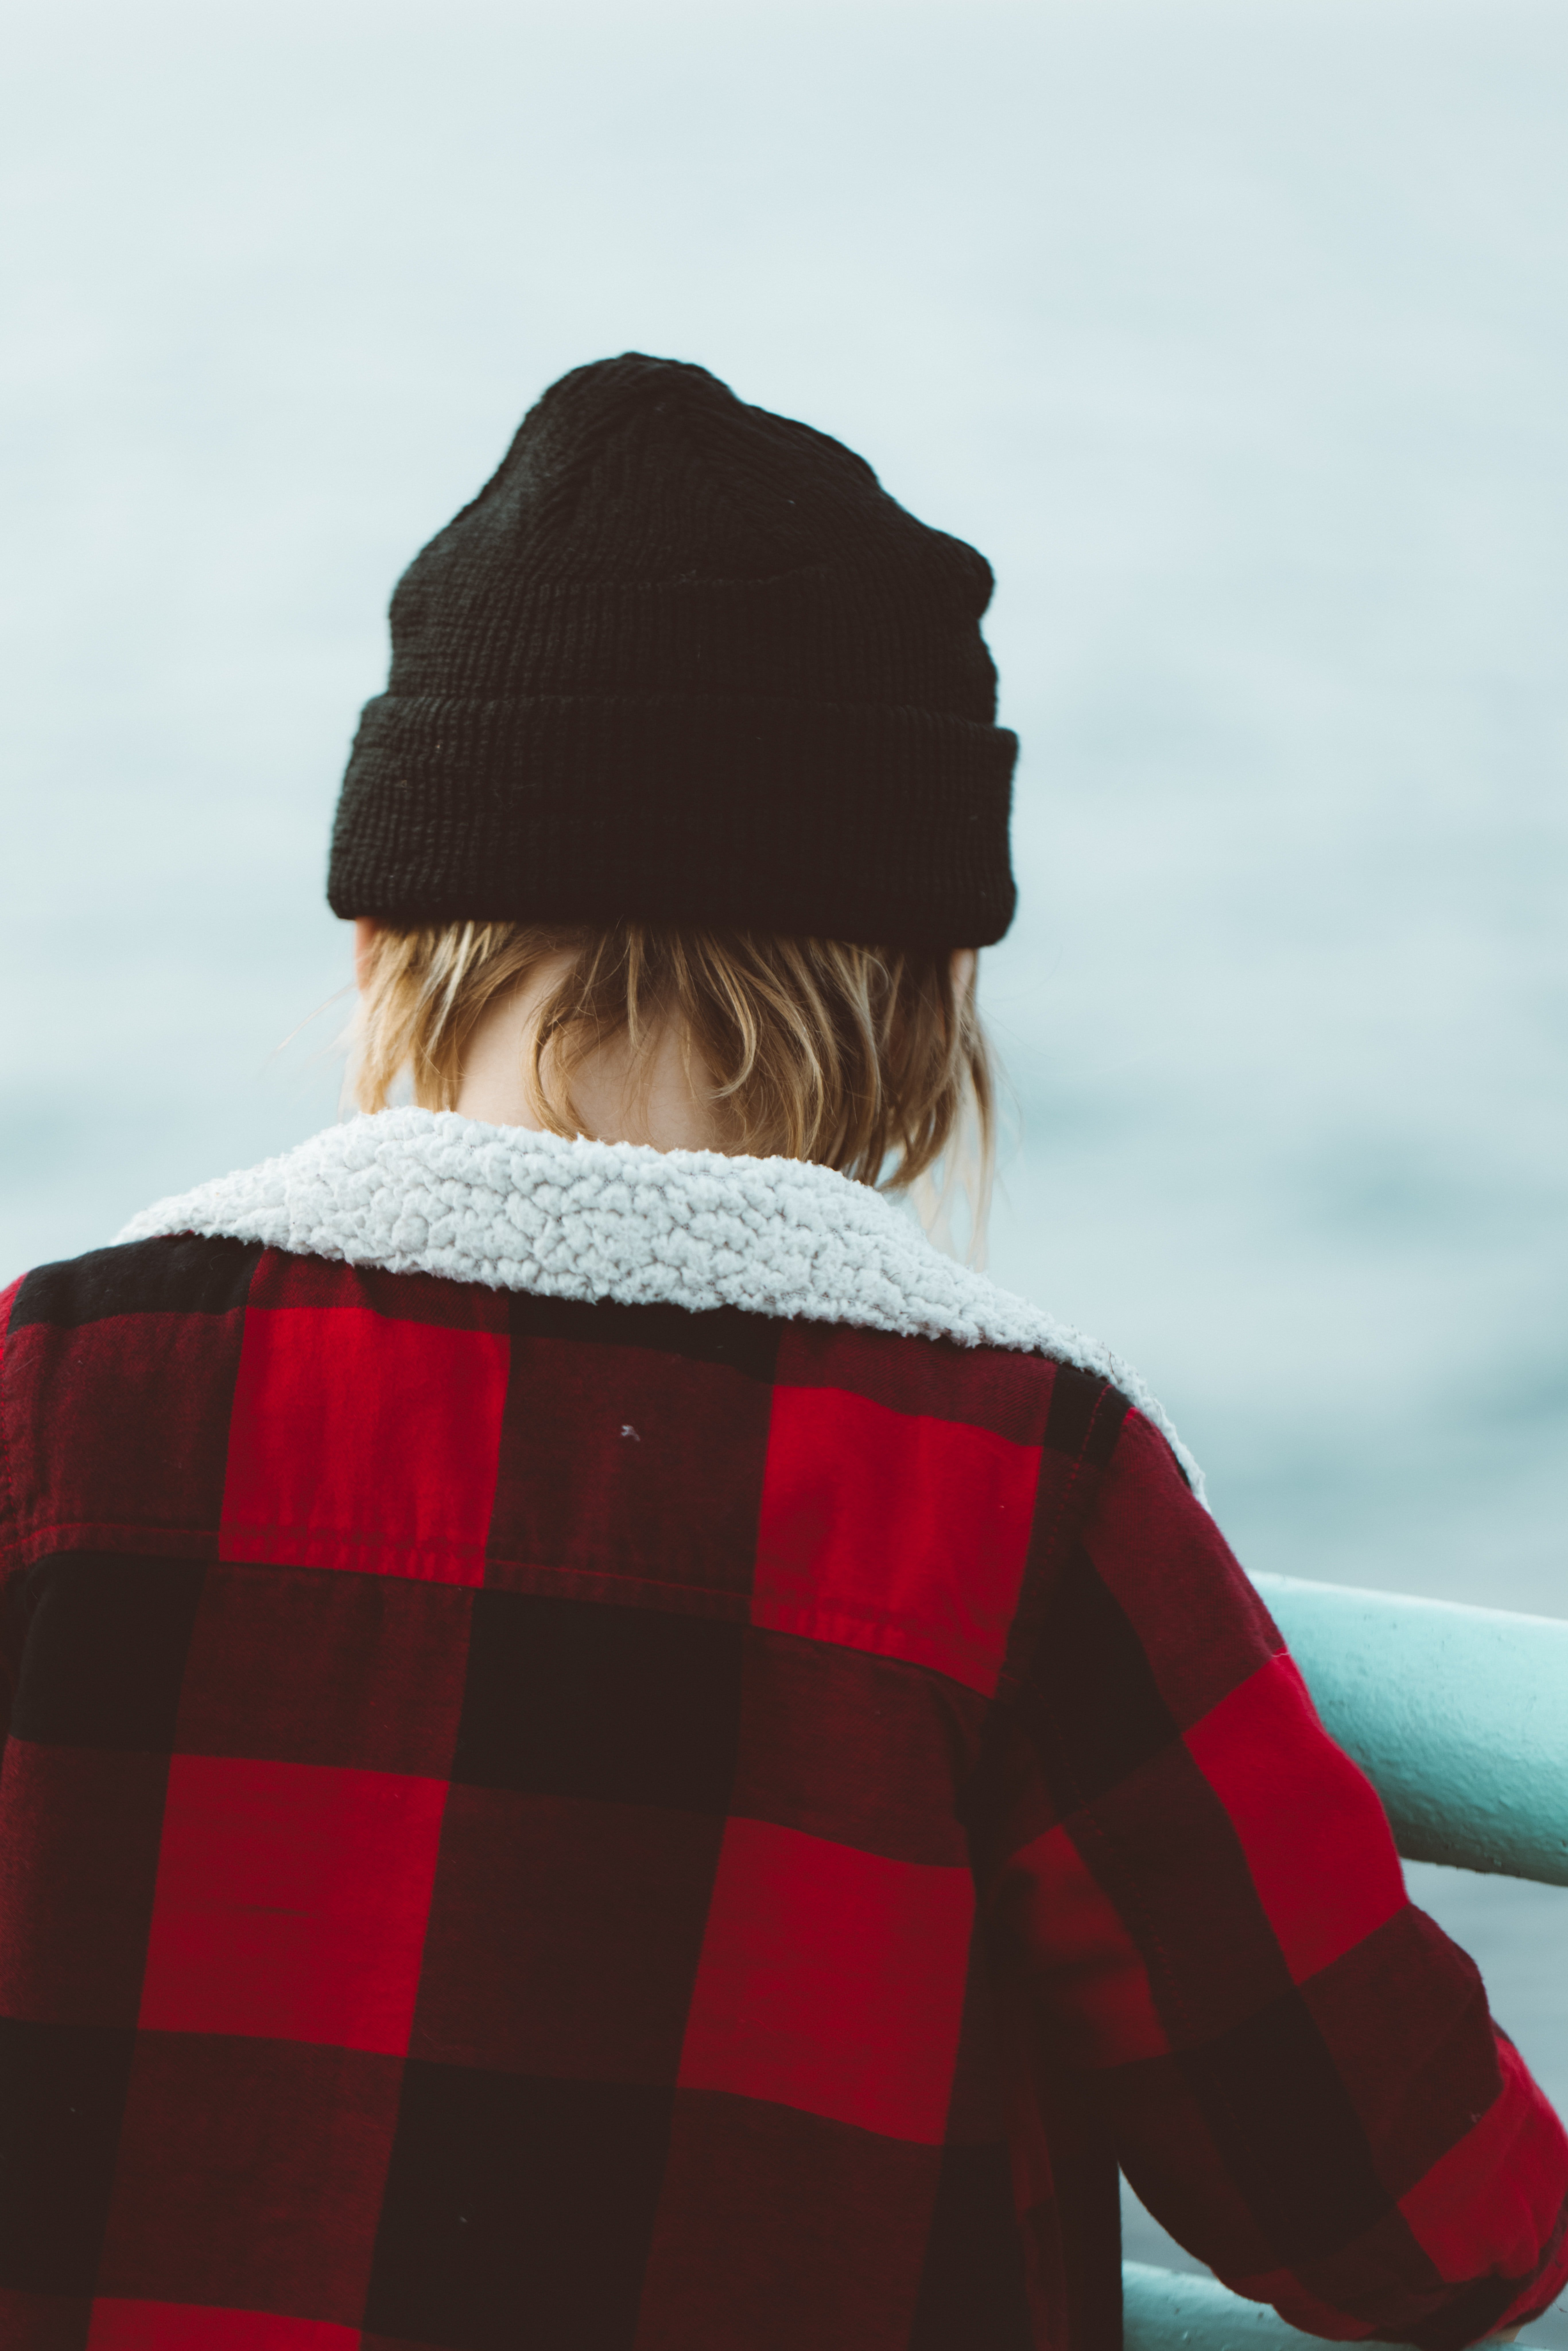 The boy refused to take help from Gina and later vanished   Photo: Unsplash